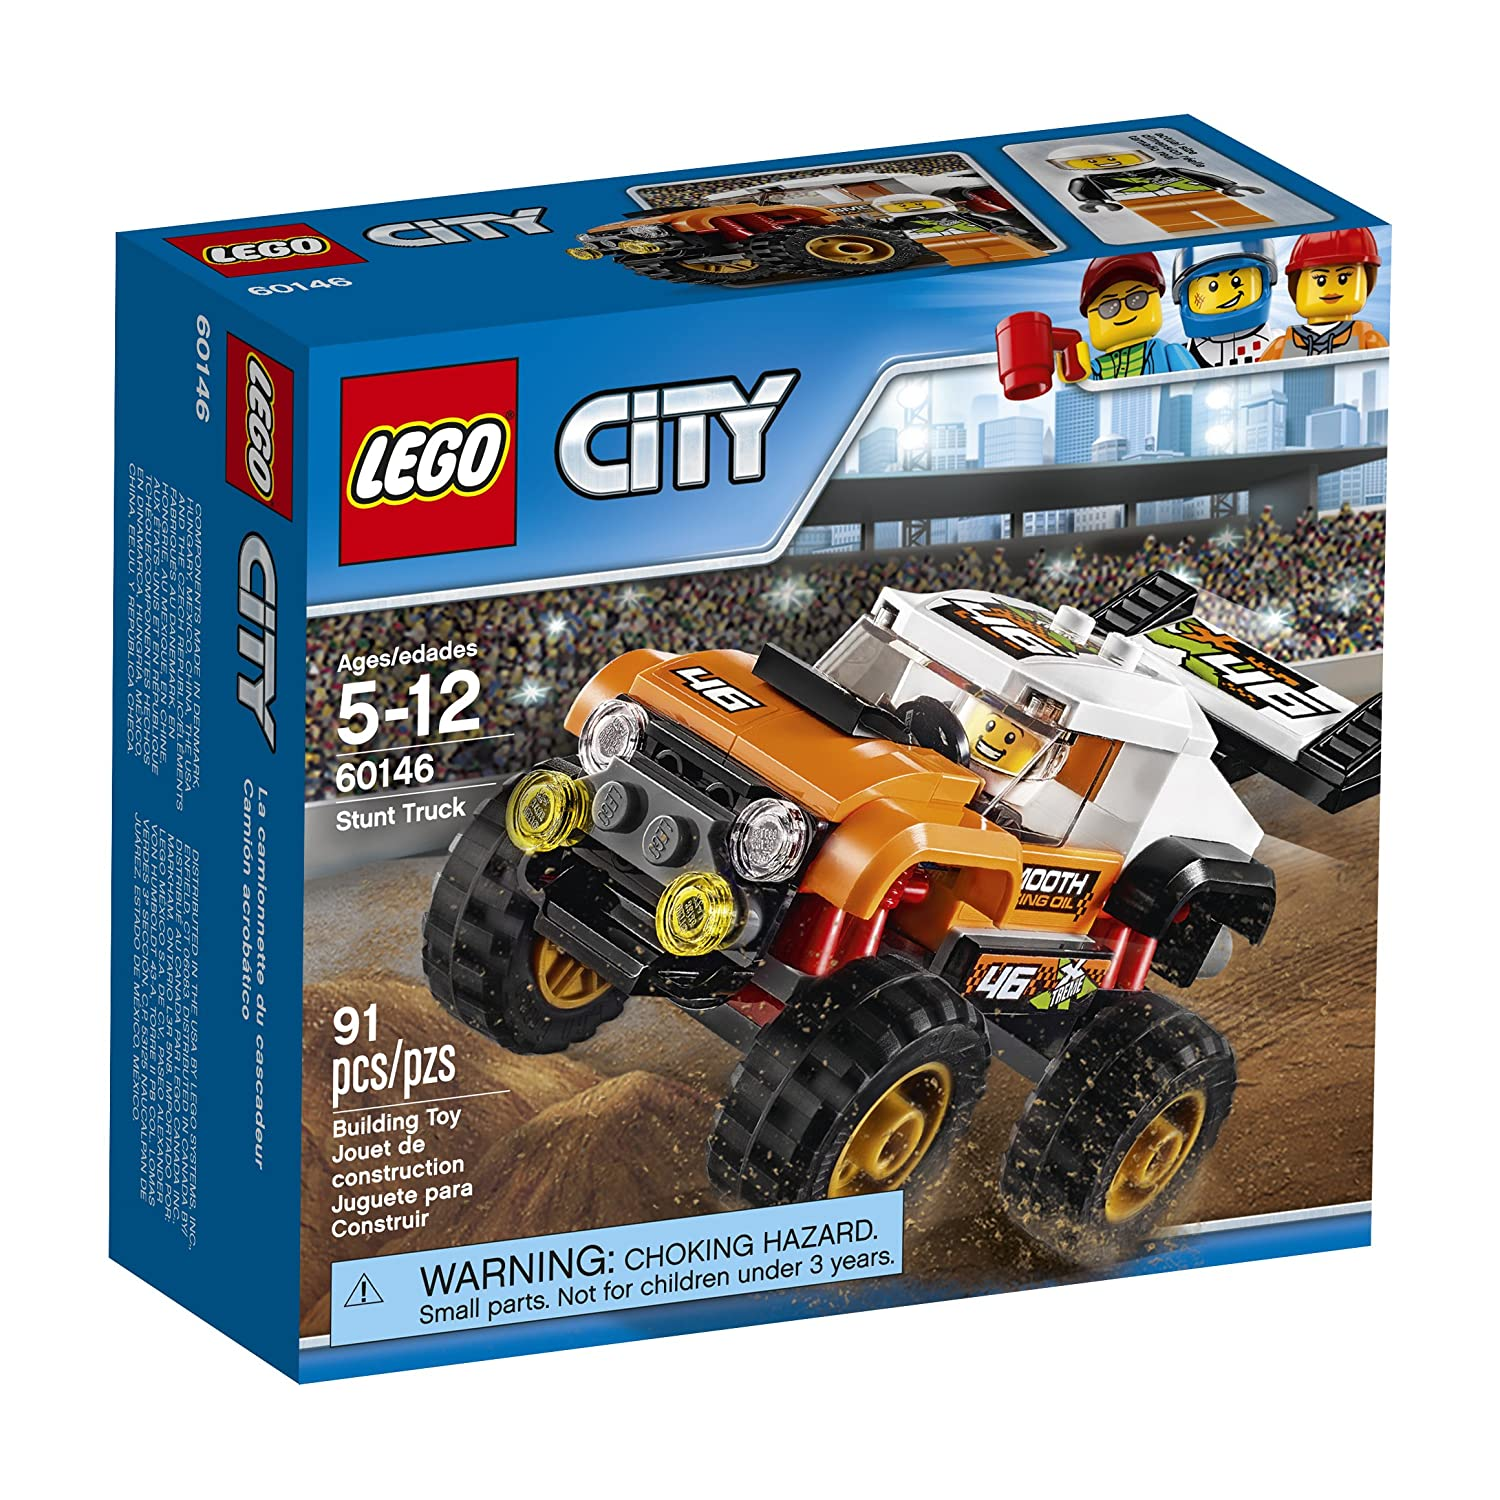 LEGO City Great Vehicles Pizza Van 60150 Construction Toy 6174487